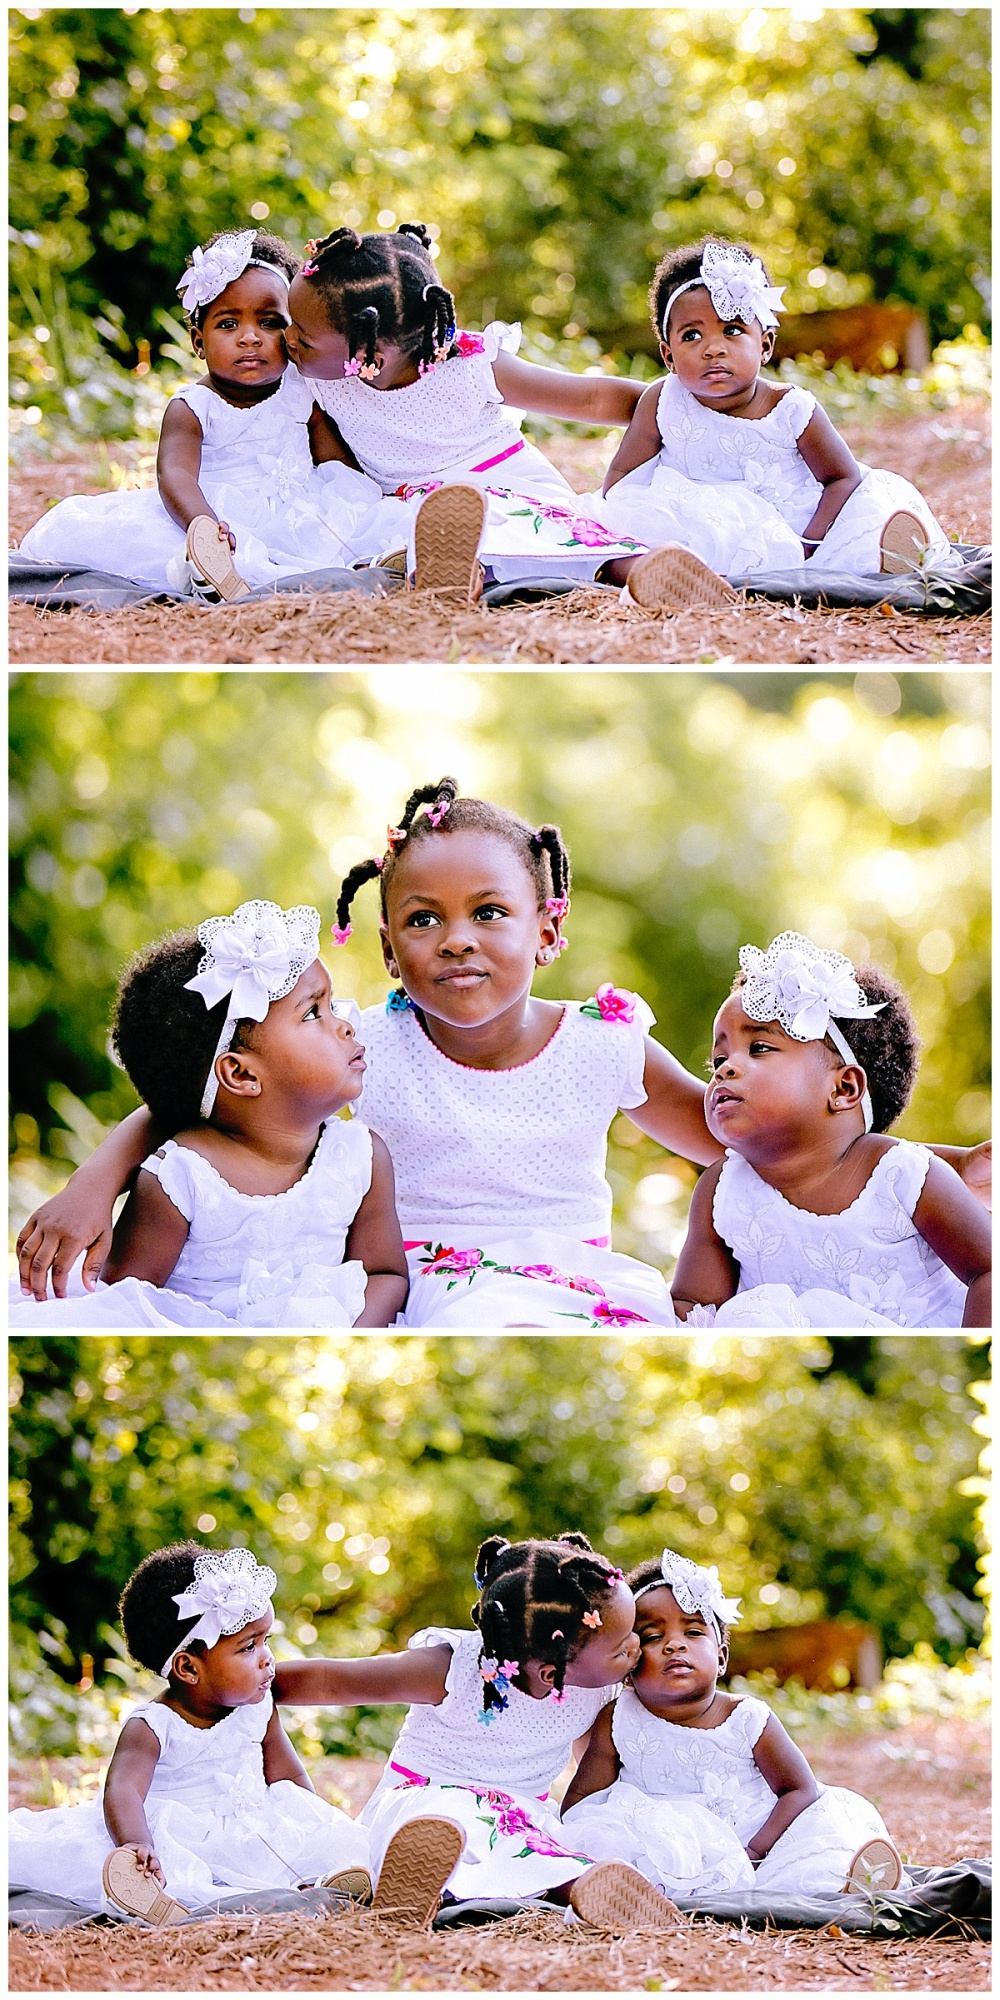 Carly-Barton-Photography-Family-Session-Kilgore-Texas-Twins-1-year-birthday-cake-smash-Olowo-family-photos_0028.jpg